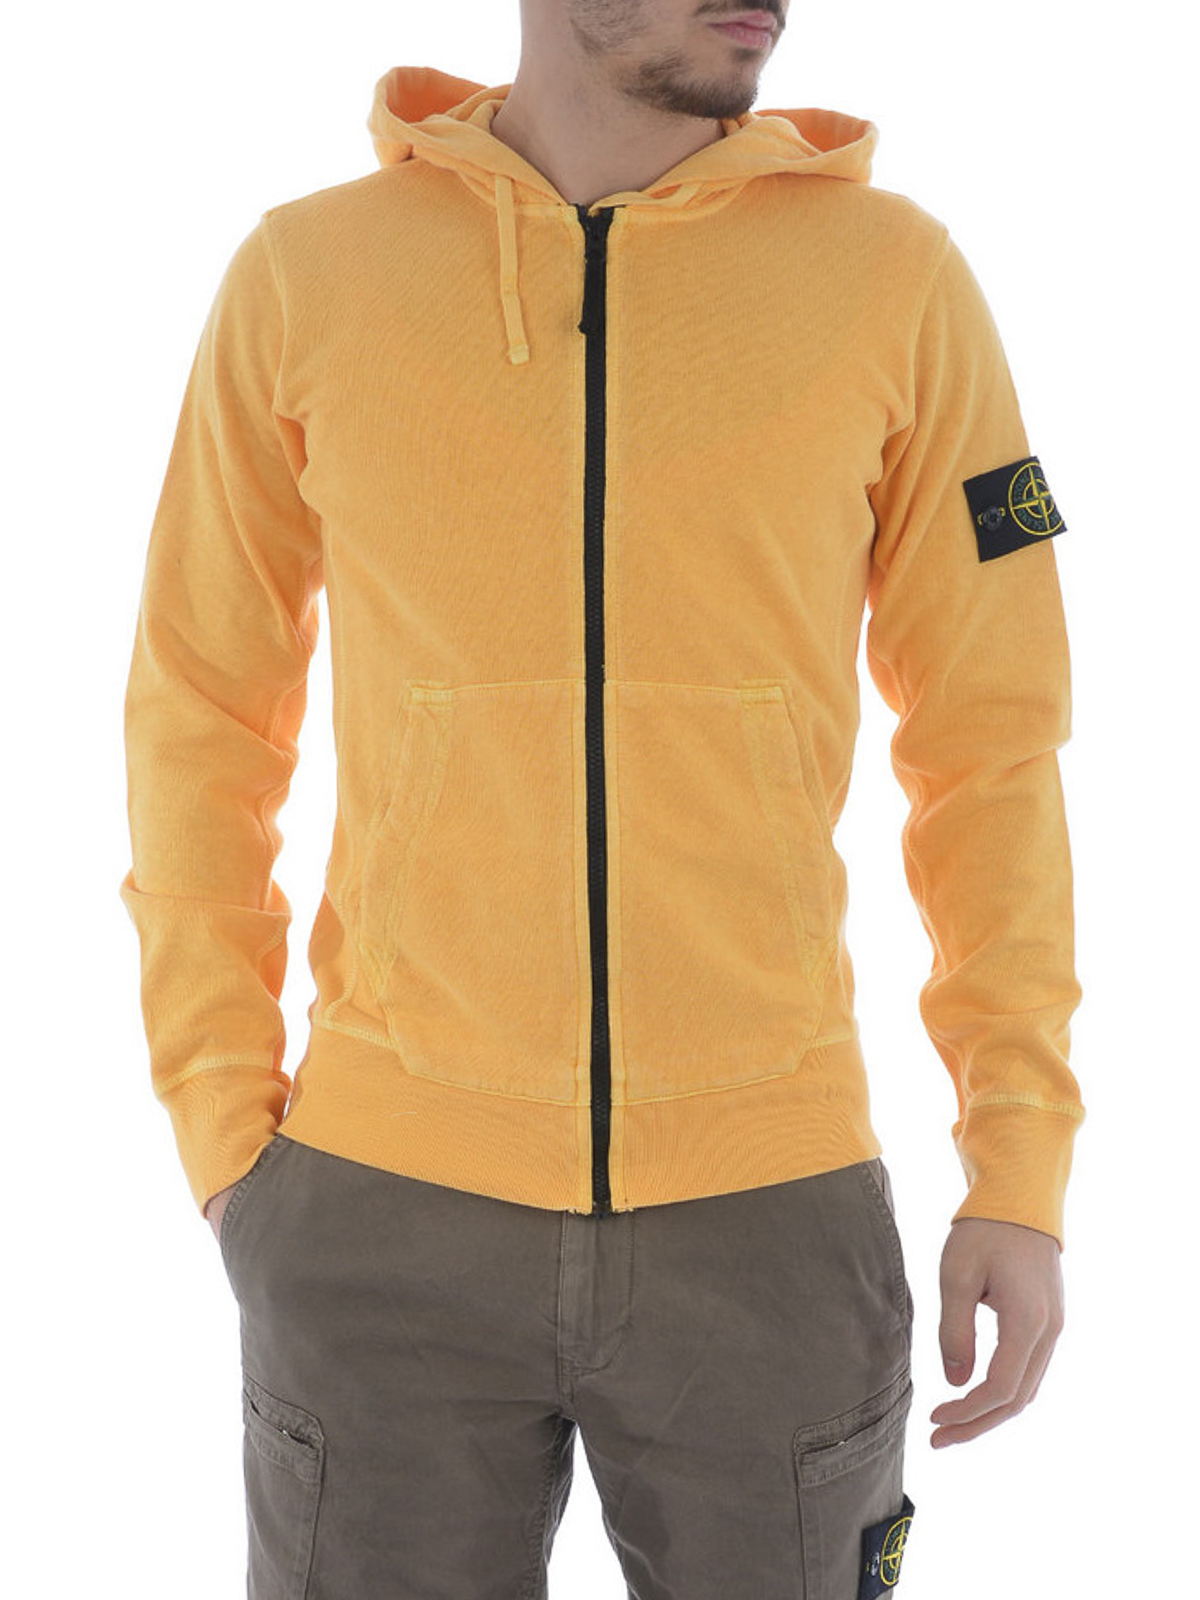 Hooded Sweatshirts Online. Shop for Hooded Sweatshirts in India Buy latest range of Hooded Sweatshirts at Myntra Free Shipping COD 30 Day Returns. Buy wide range of Hooded Sweatshirts Online in India at Best Prices. Free Shipping Cash on Delivery 30 .